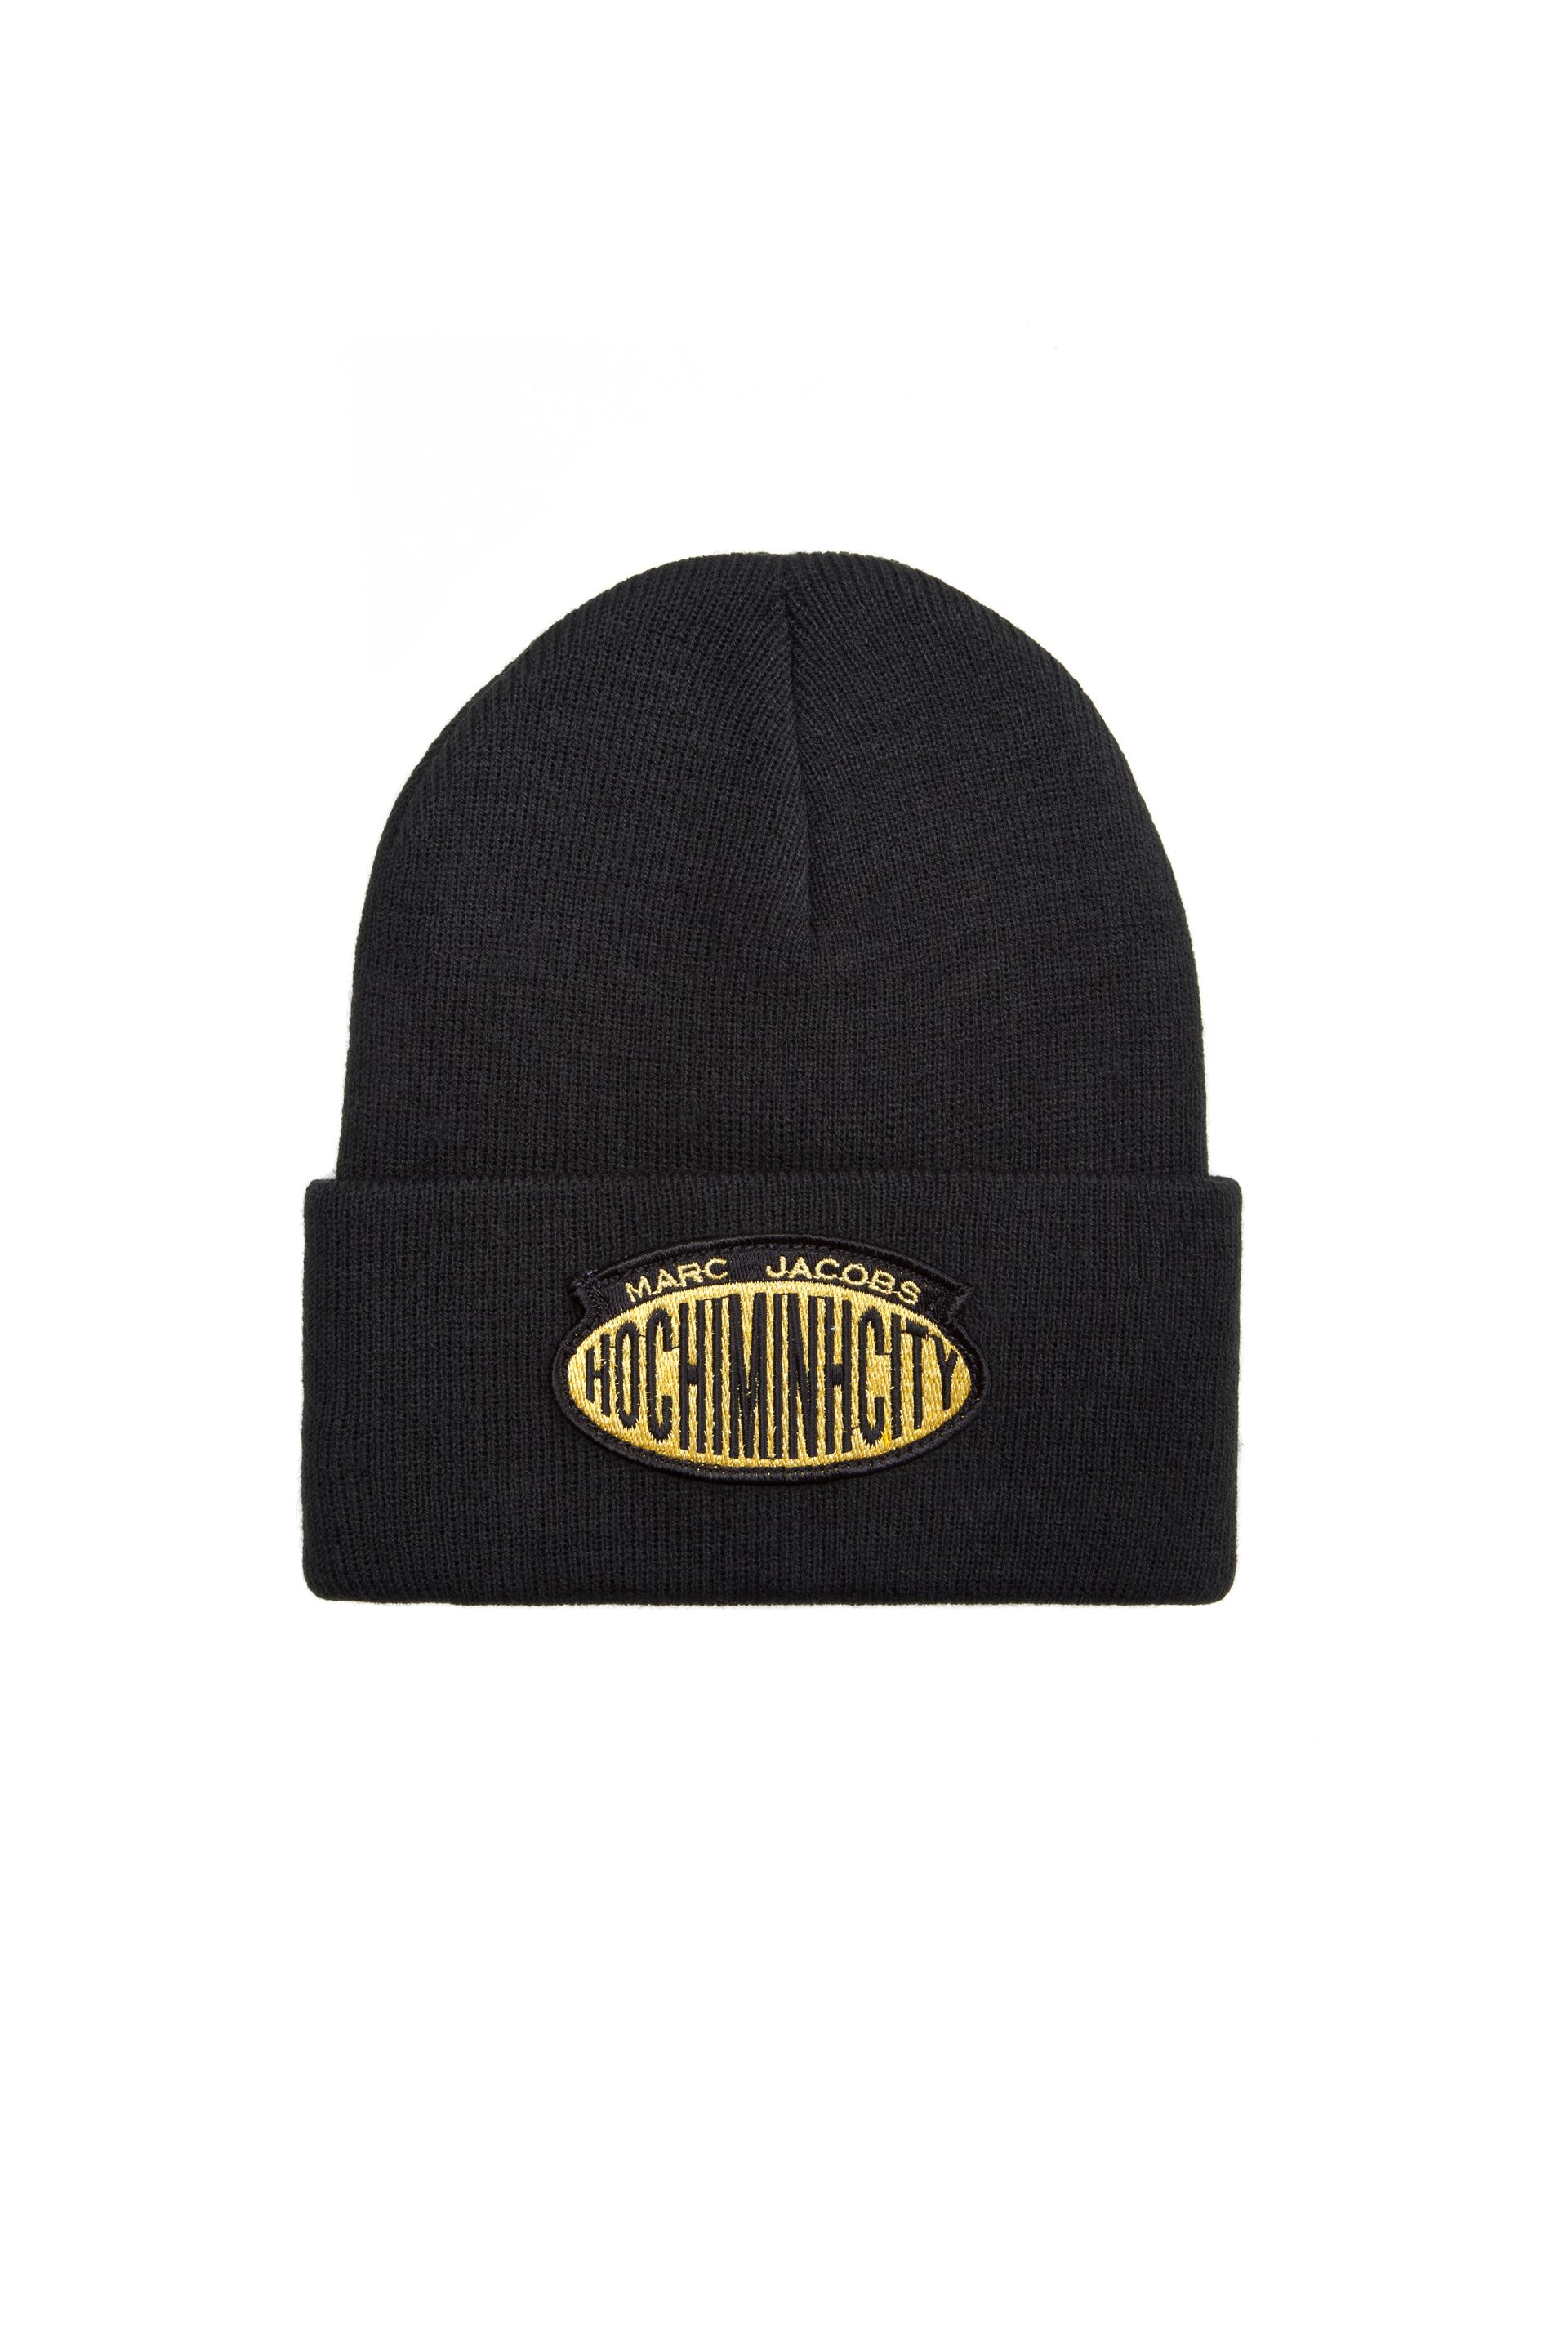 City Beanie - Special Items - Shop marcjacobs.com - Marc Jacobs